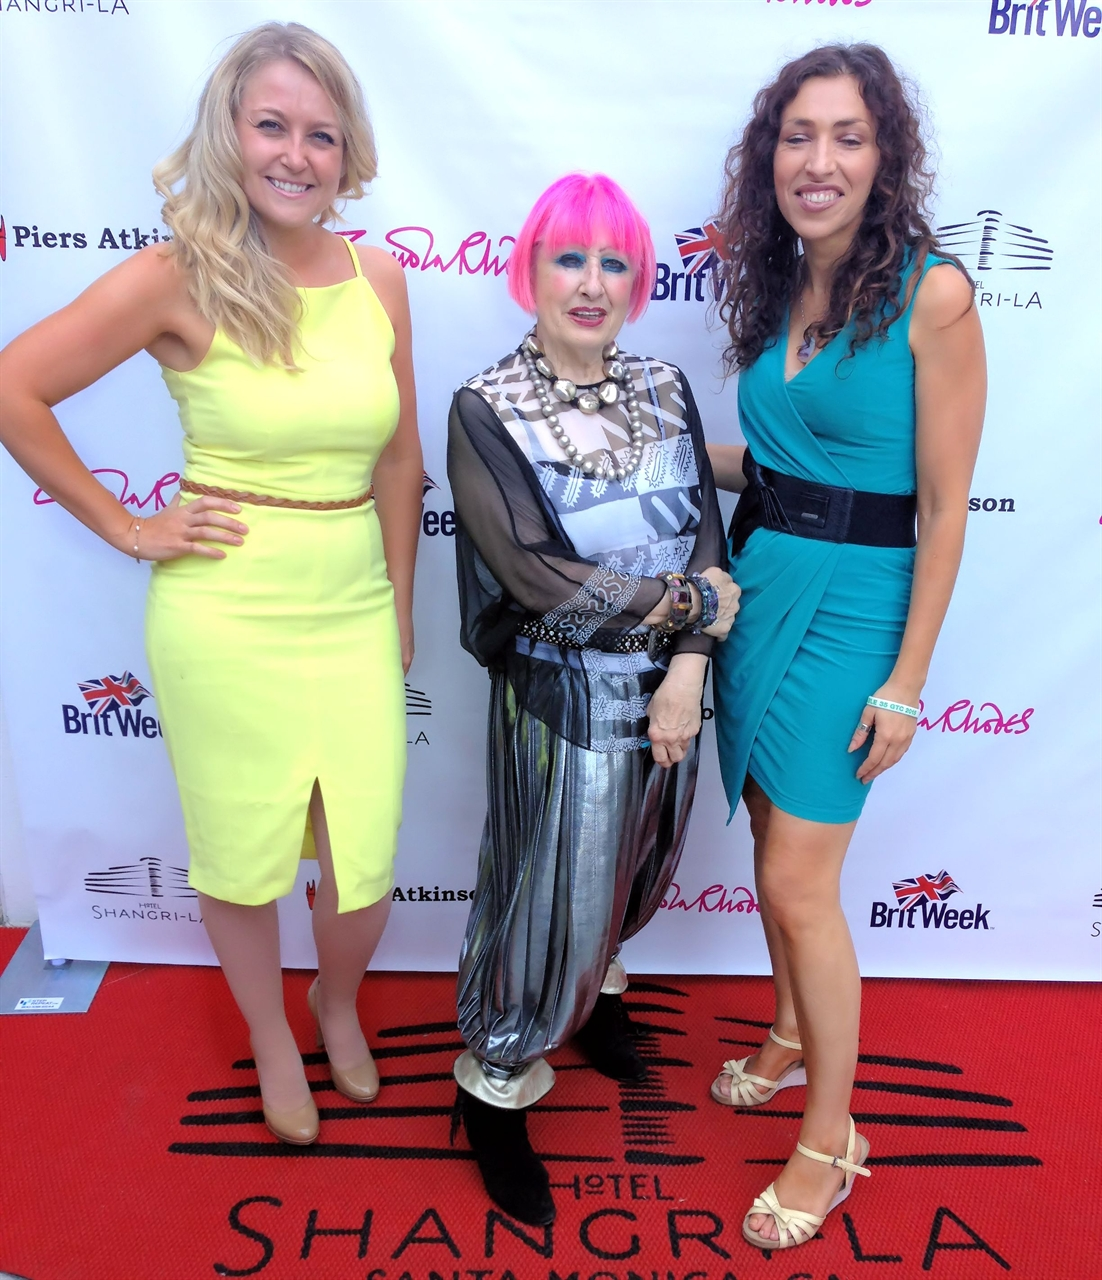 Janine Gateland with British Designer Zanola Rhodes and Sandra de Sousa attends Brit Week at Hotel Shangrila taking place in LA.